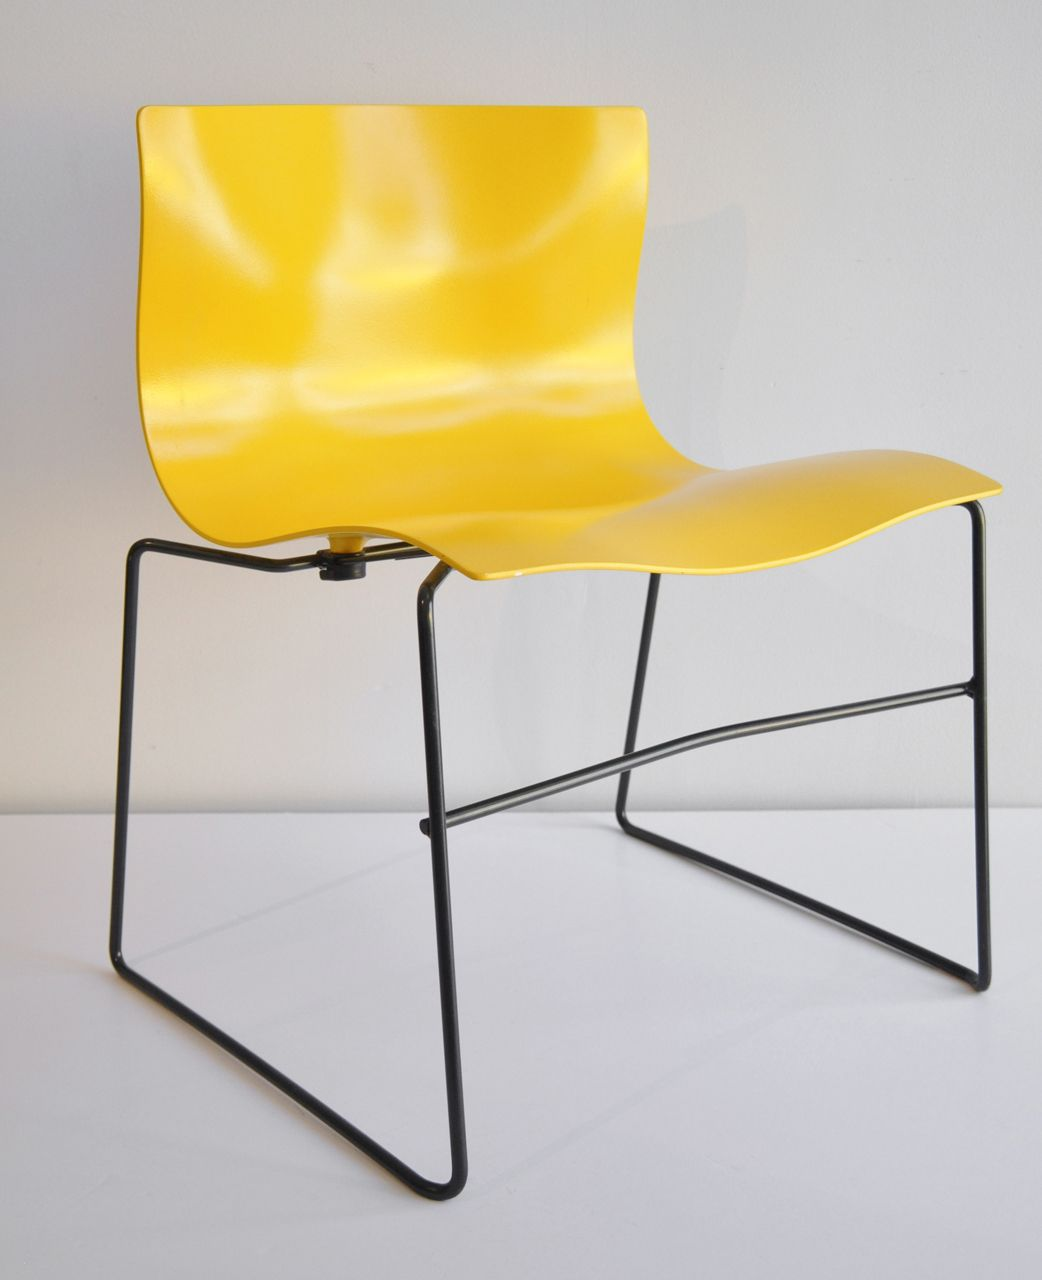 Massimo And Lella Vignelli; Molded Fiberglass And Enameled Metal U0027  Handkerchiefu0027 Stacking Chair For Knoll, 1985.